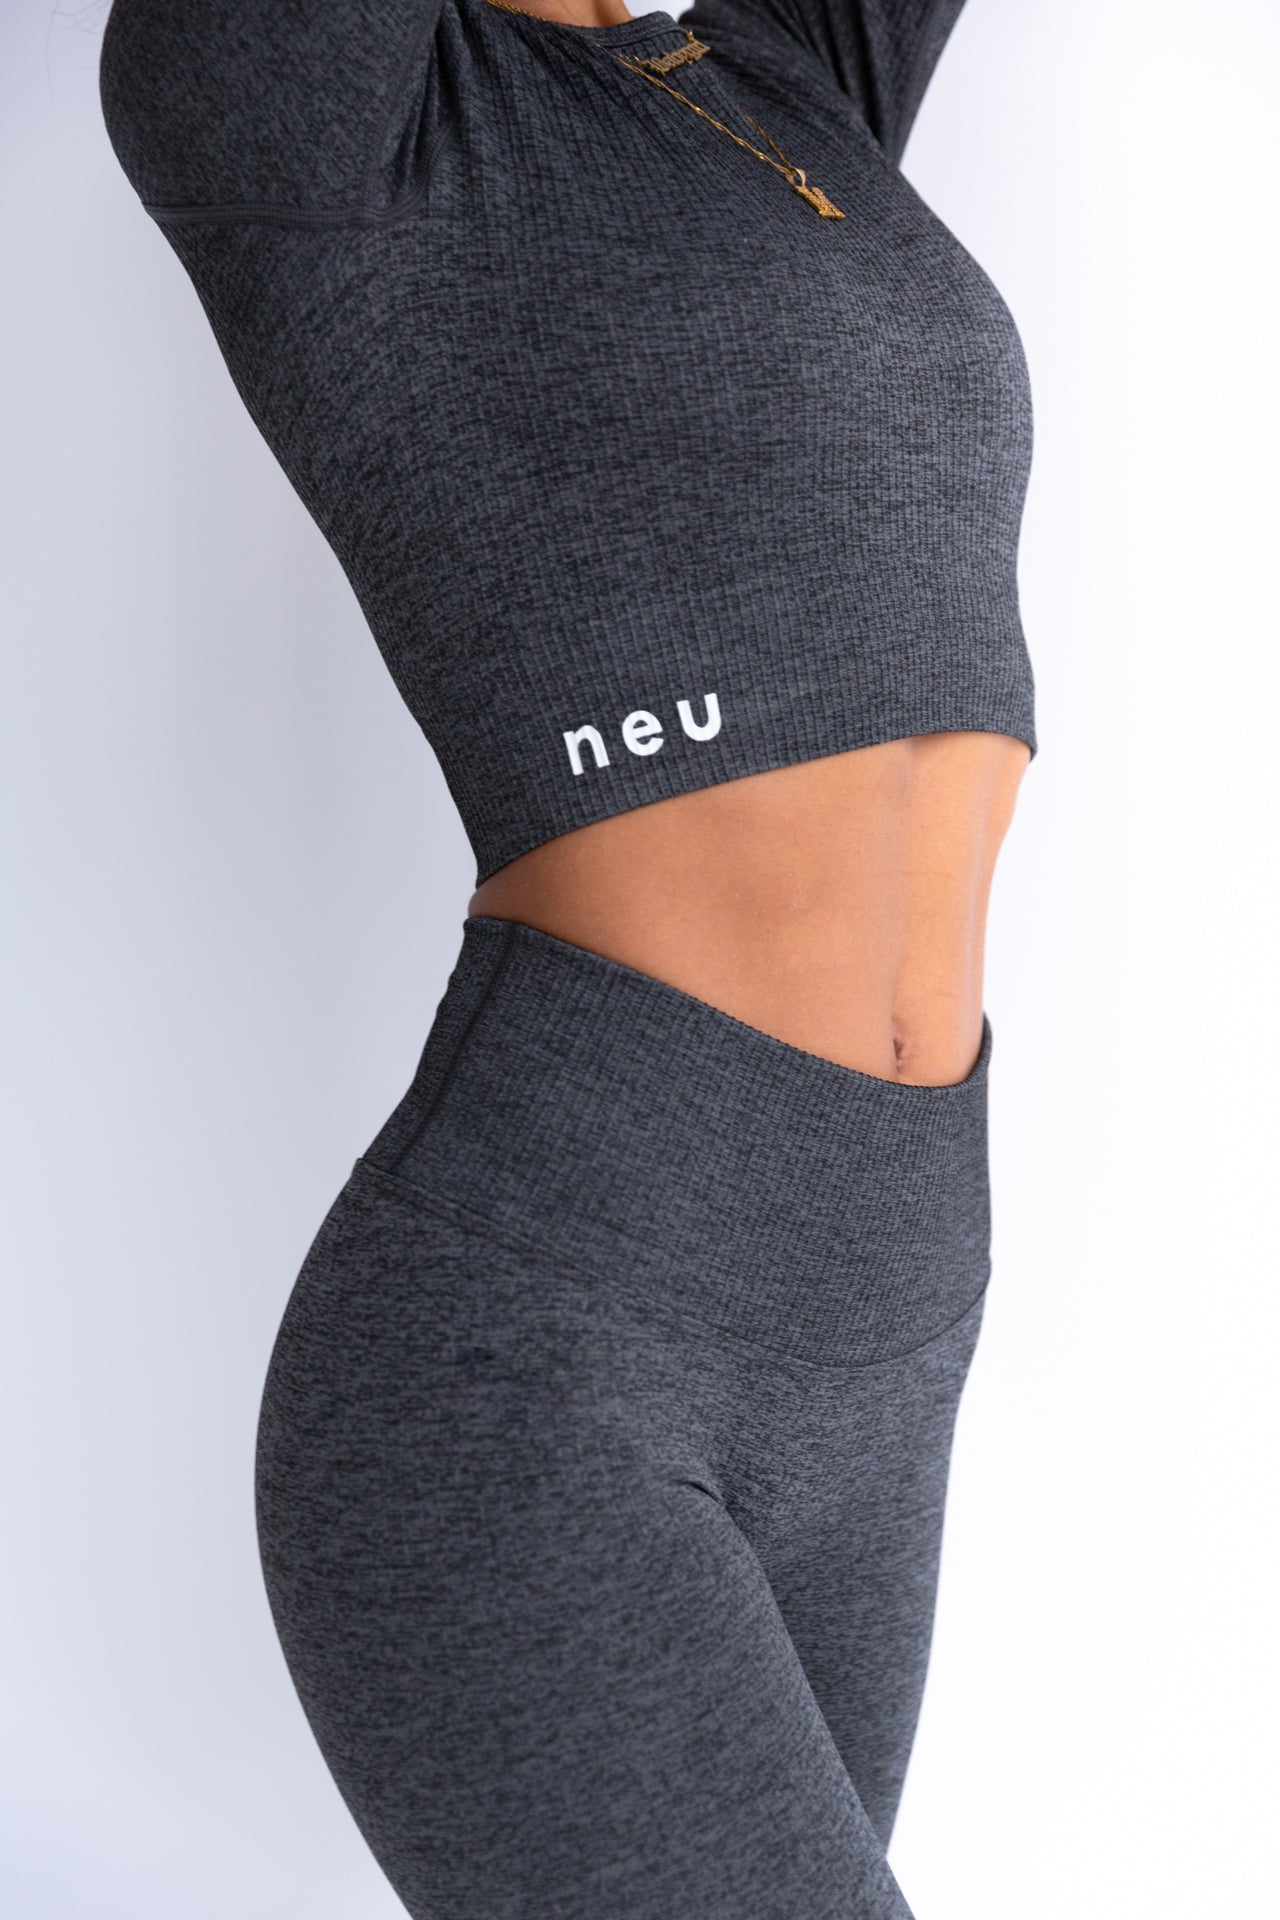 Graphite Grey Ribbed Seamless Leggings